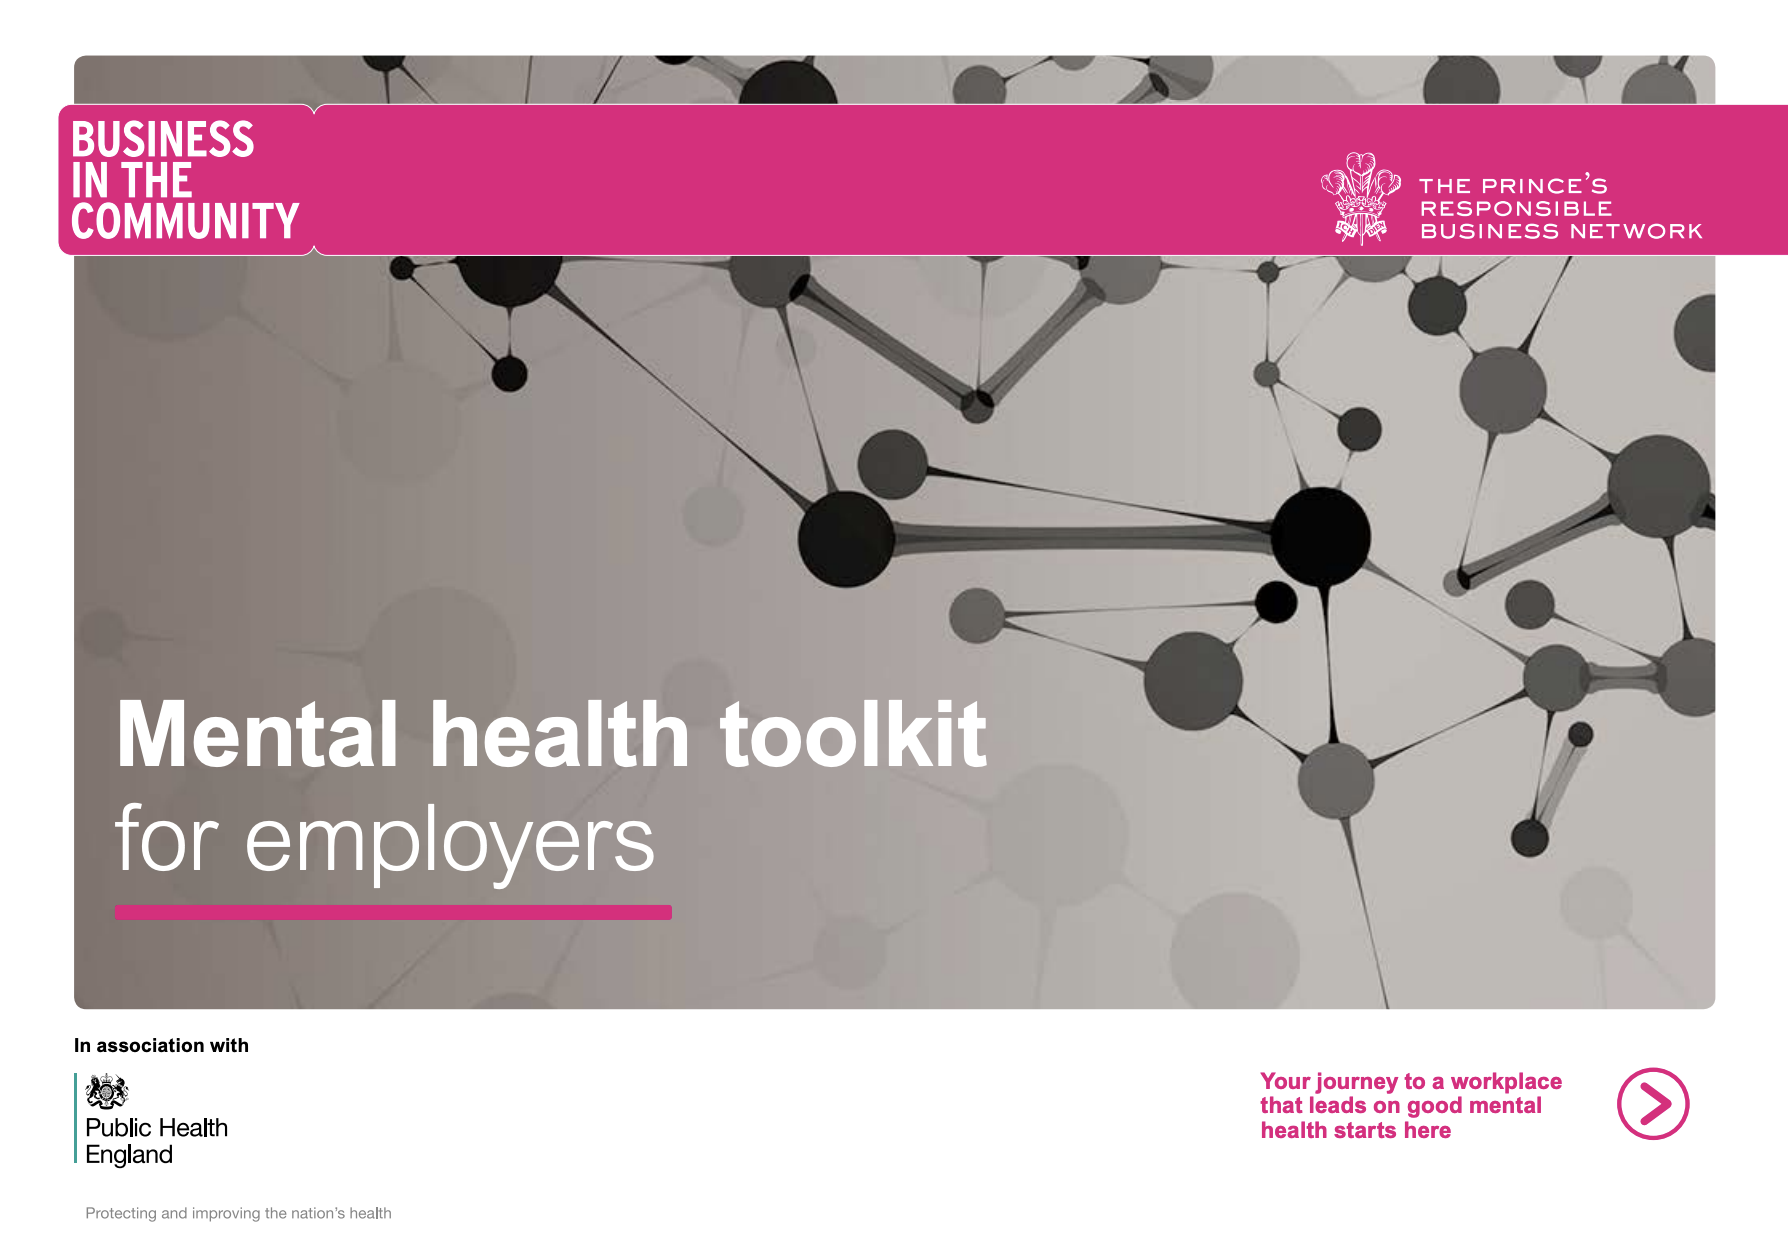 Mental Health Toolkit for Employers:    To build a systematic action plan for mental health based on company size